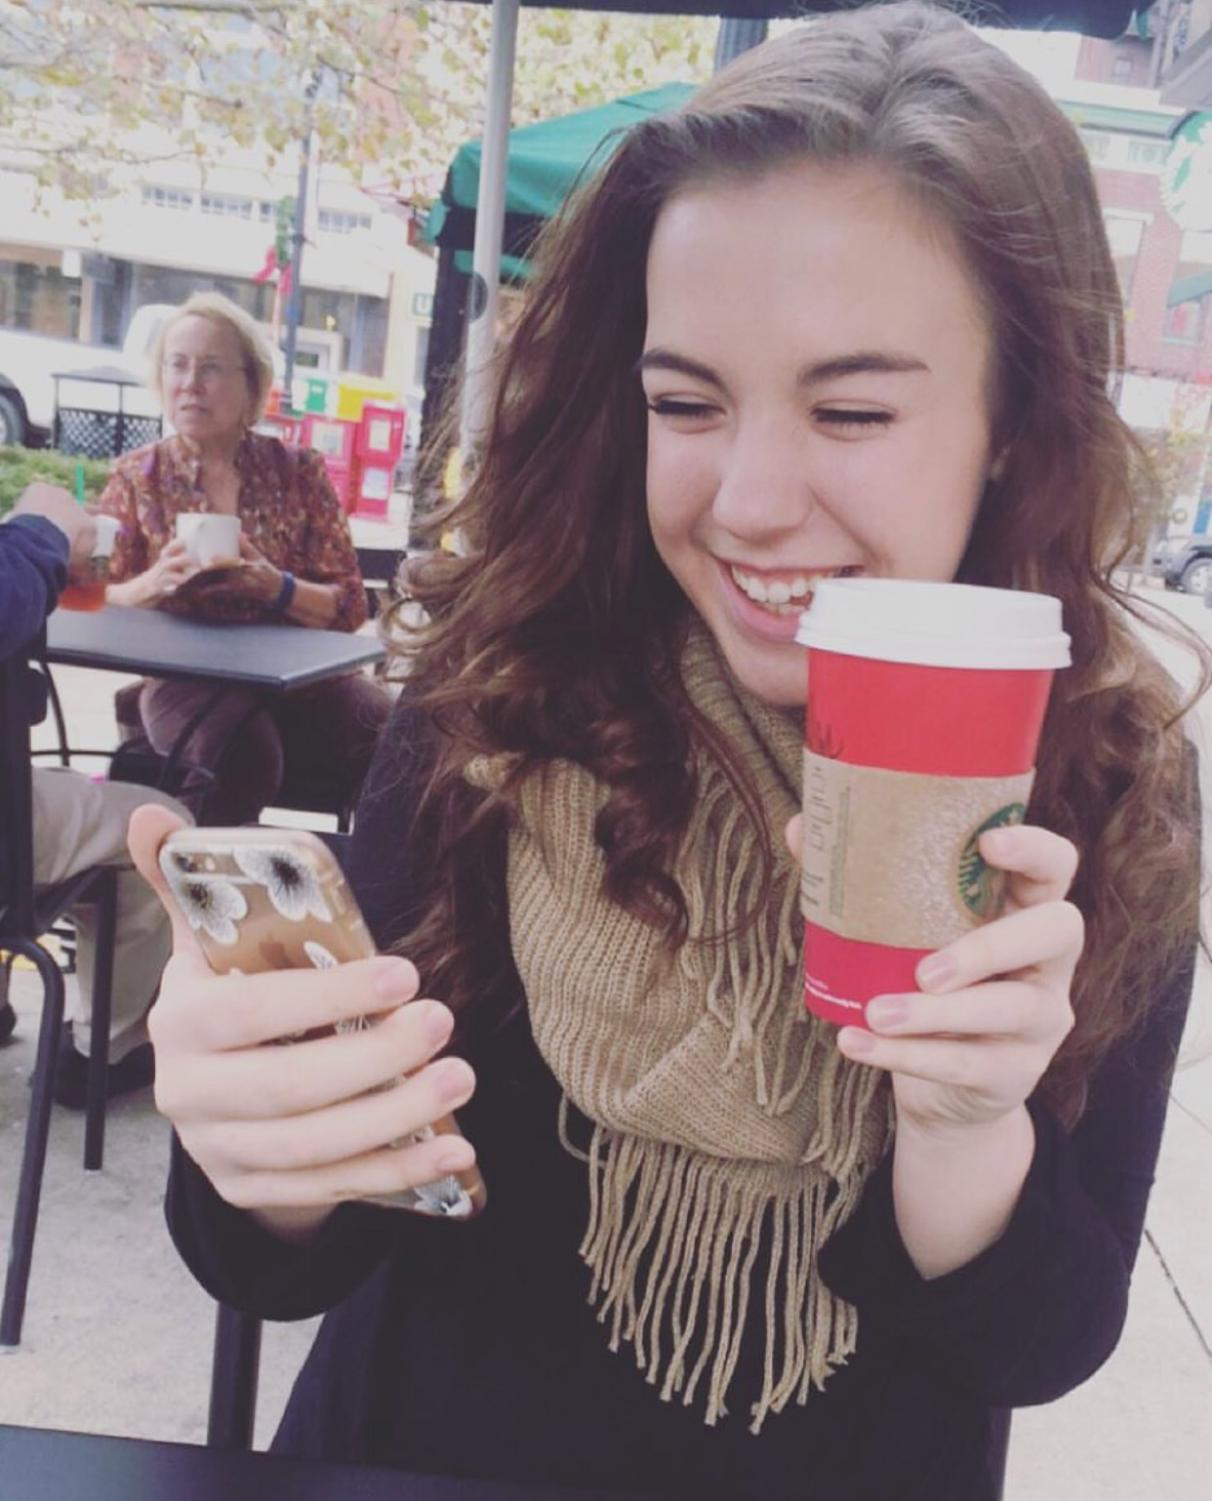 Rileigh Smirl smiles as she takes a picture with her coffee.